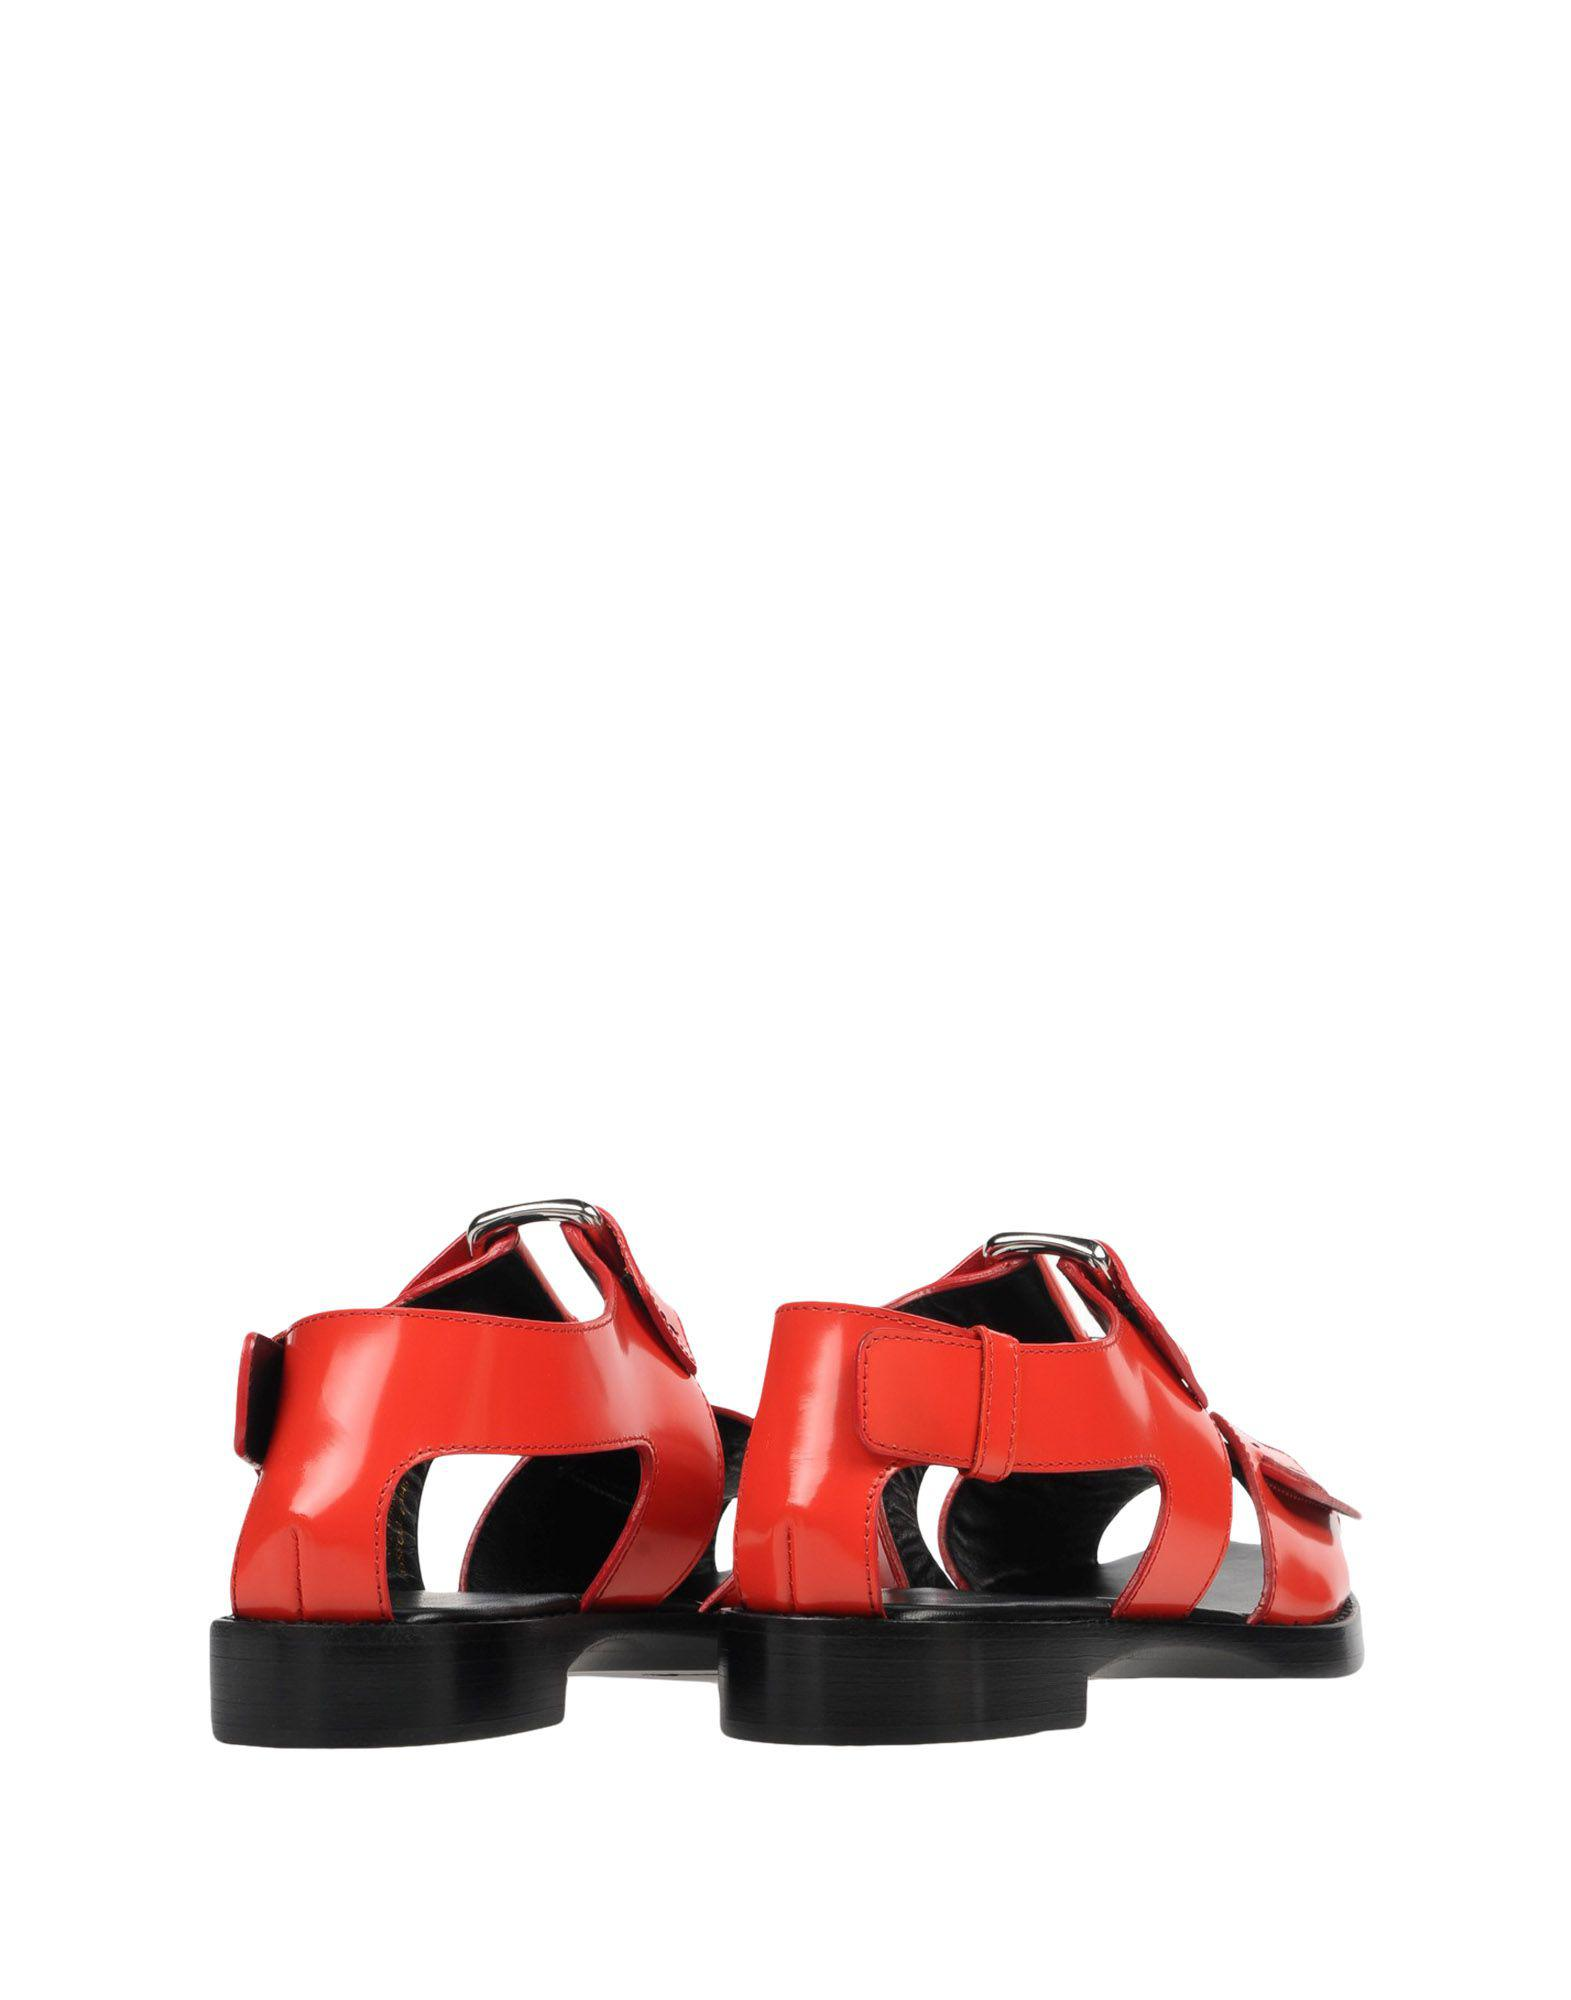 6aafc794ae0c 3.1 Phillip Lim - Red Addis Flat Sandal - Lyst. View fullscreen